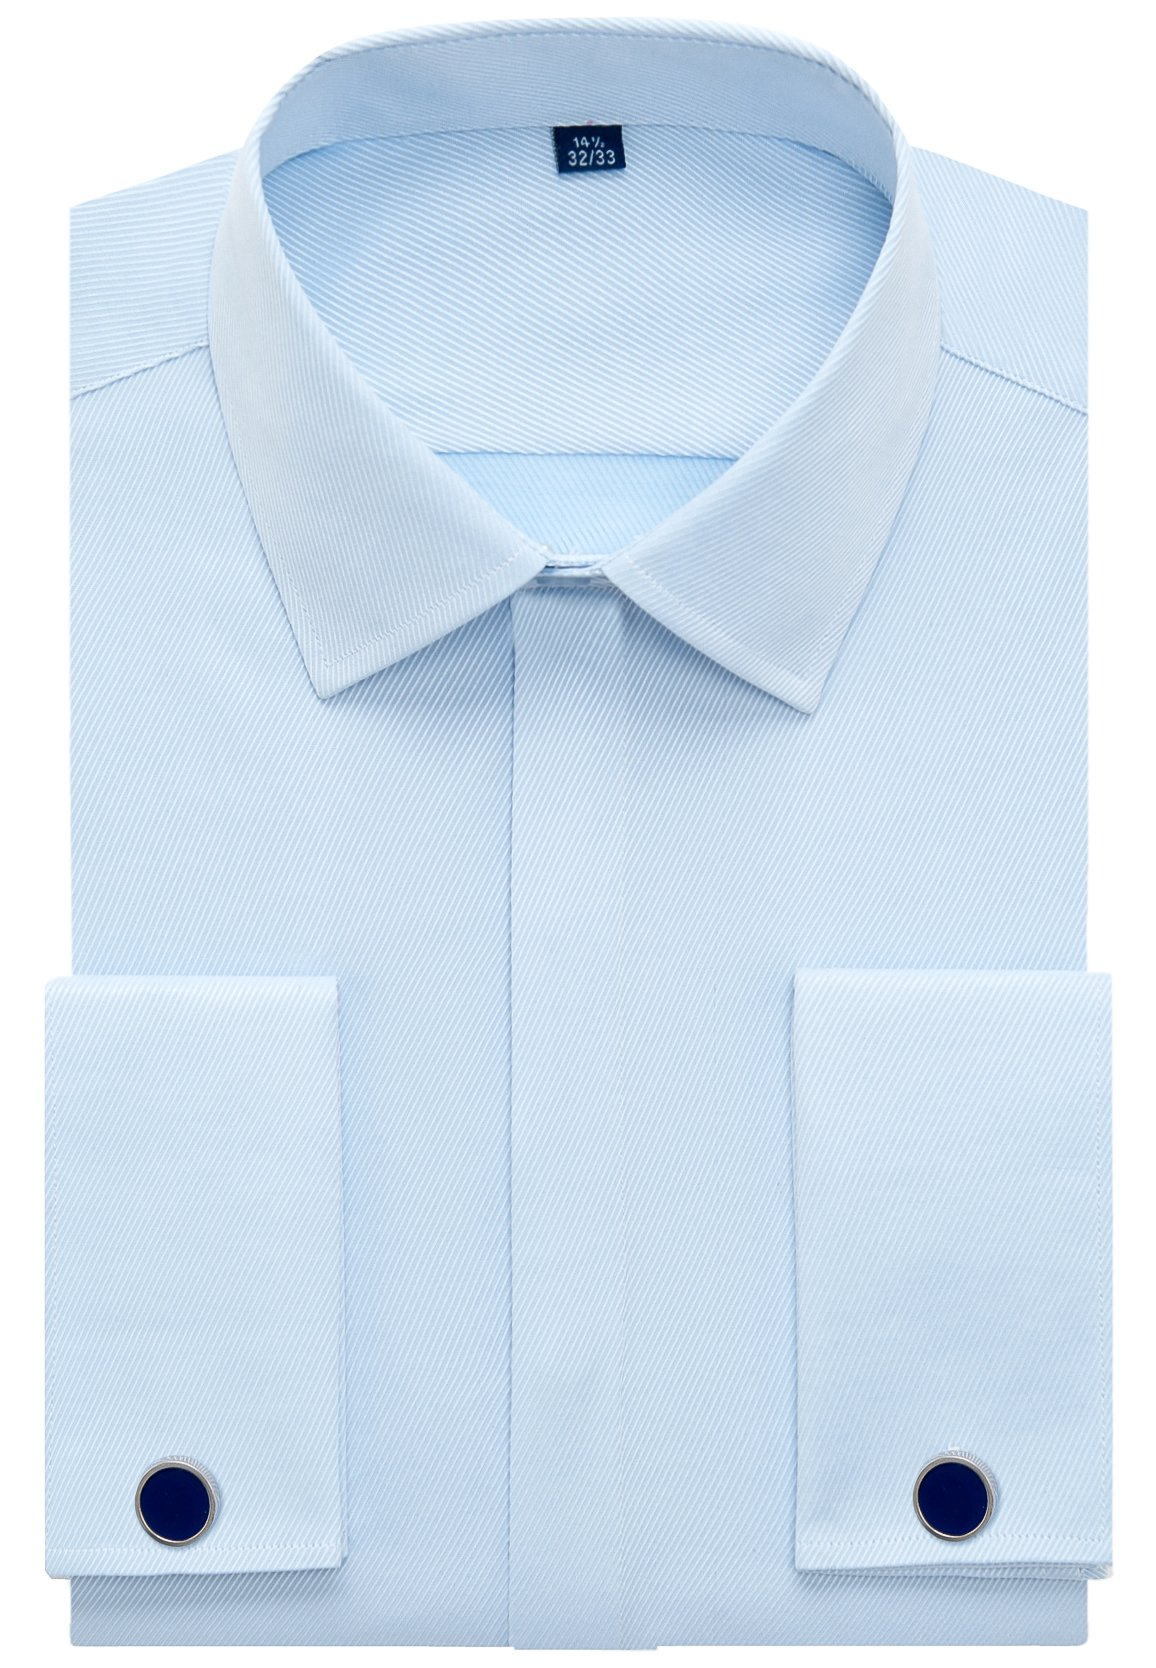 Alimens & Gentle Men's French Dress Shirt Regular Fit (Include Cufflinks Collar Stays) (17.5'' Neck 34''-35'' Sleeve, Twilled Blue)